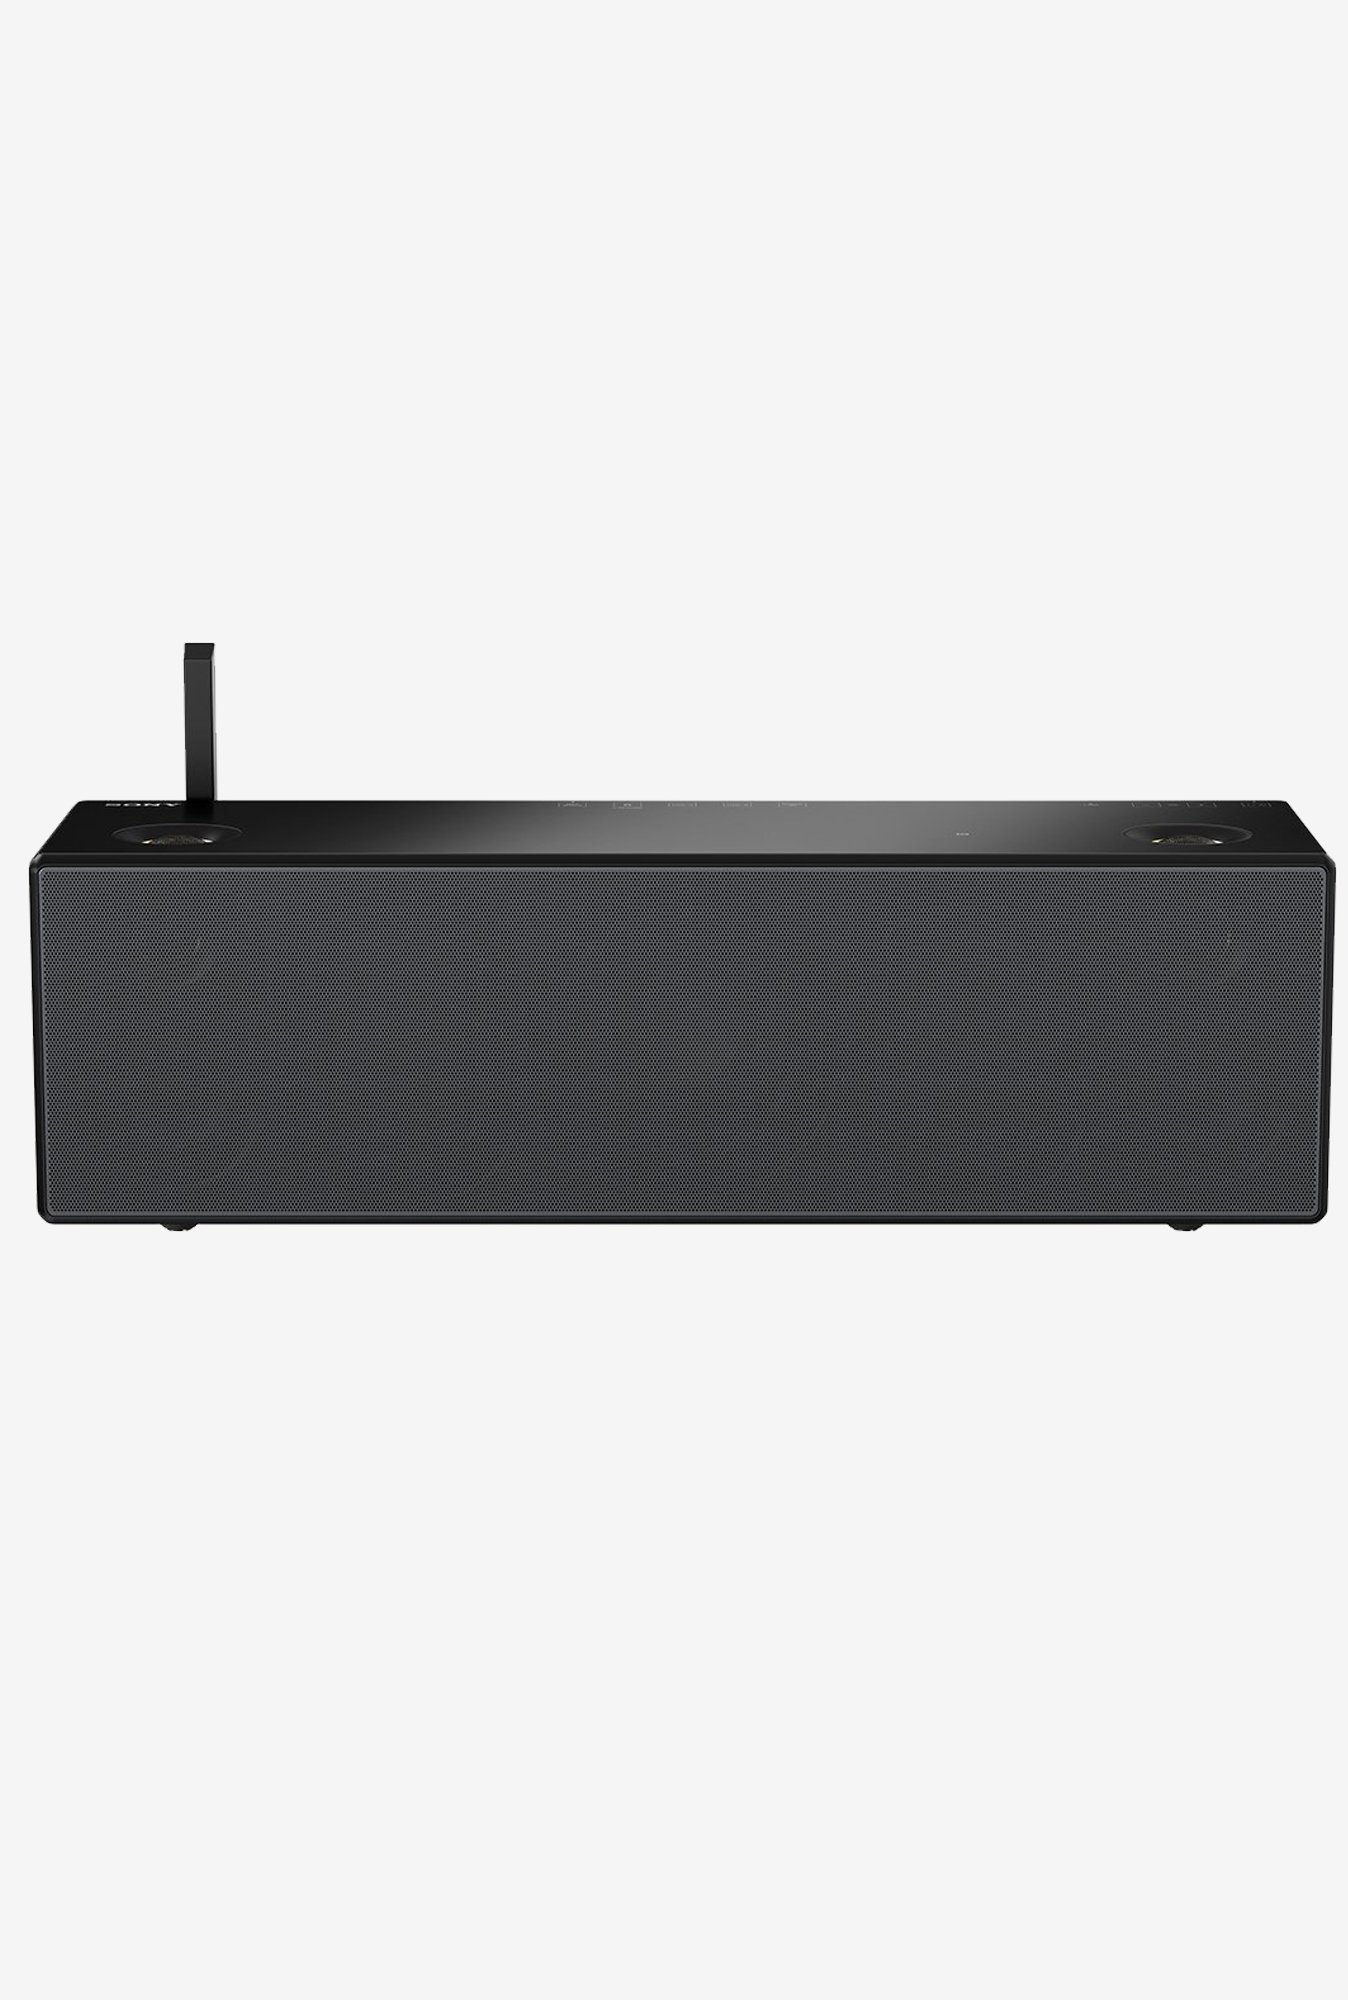 Sony SRS-X99 Premium Hi -Res Bluetooth Speaker (Black)